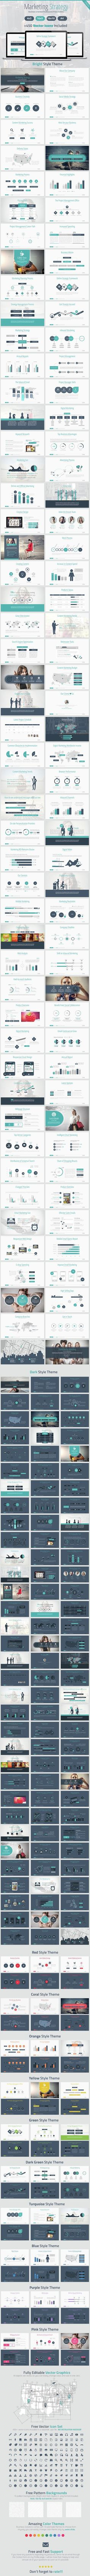 Marketing Strategy Powerpoint Presentation (PowerPoint Templates) #BusinessAnalyst